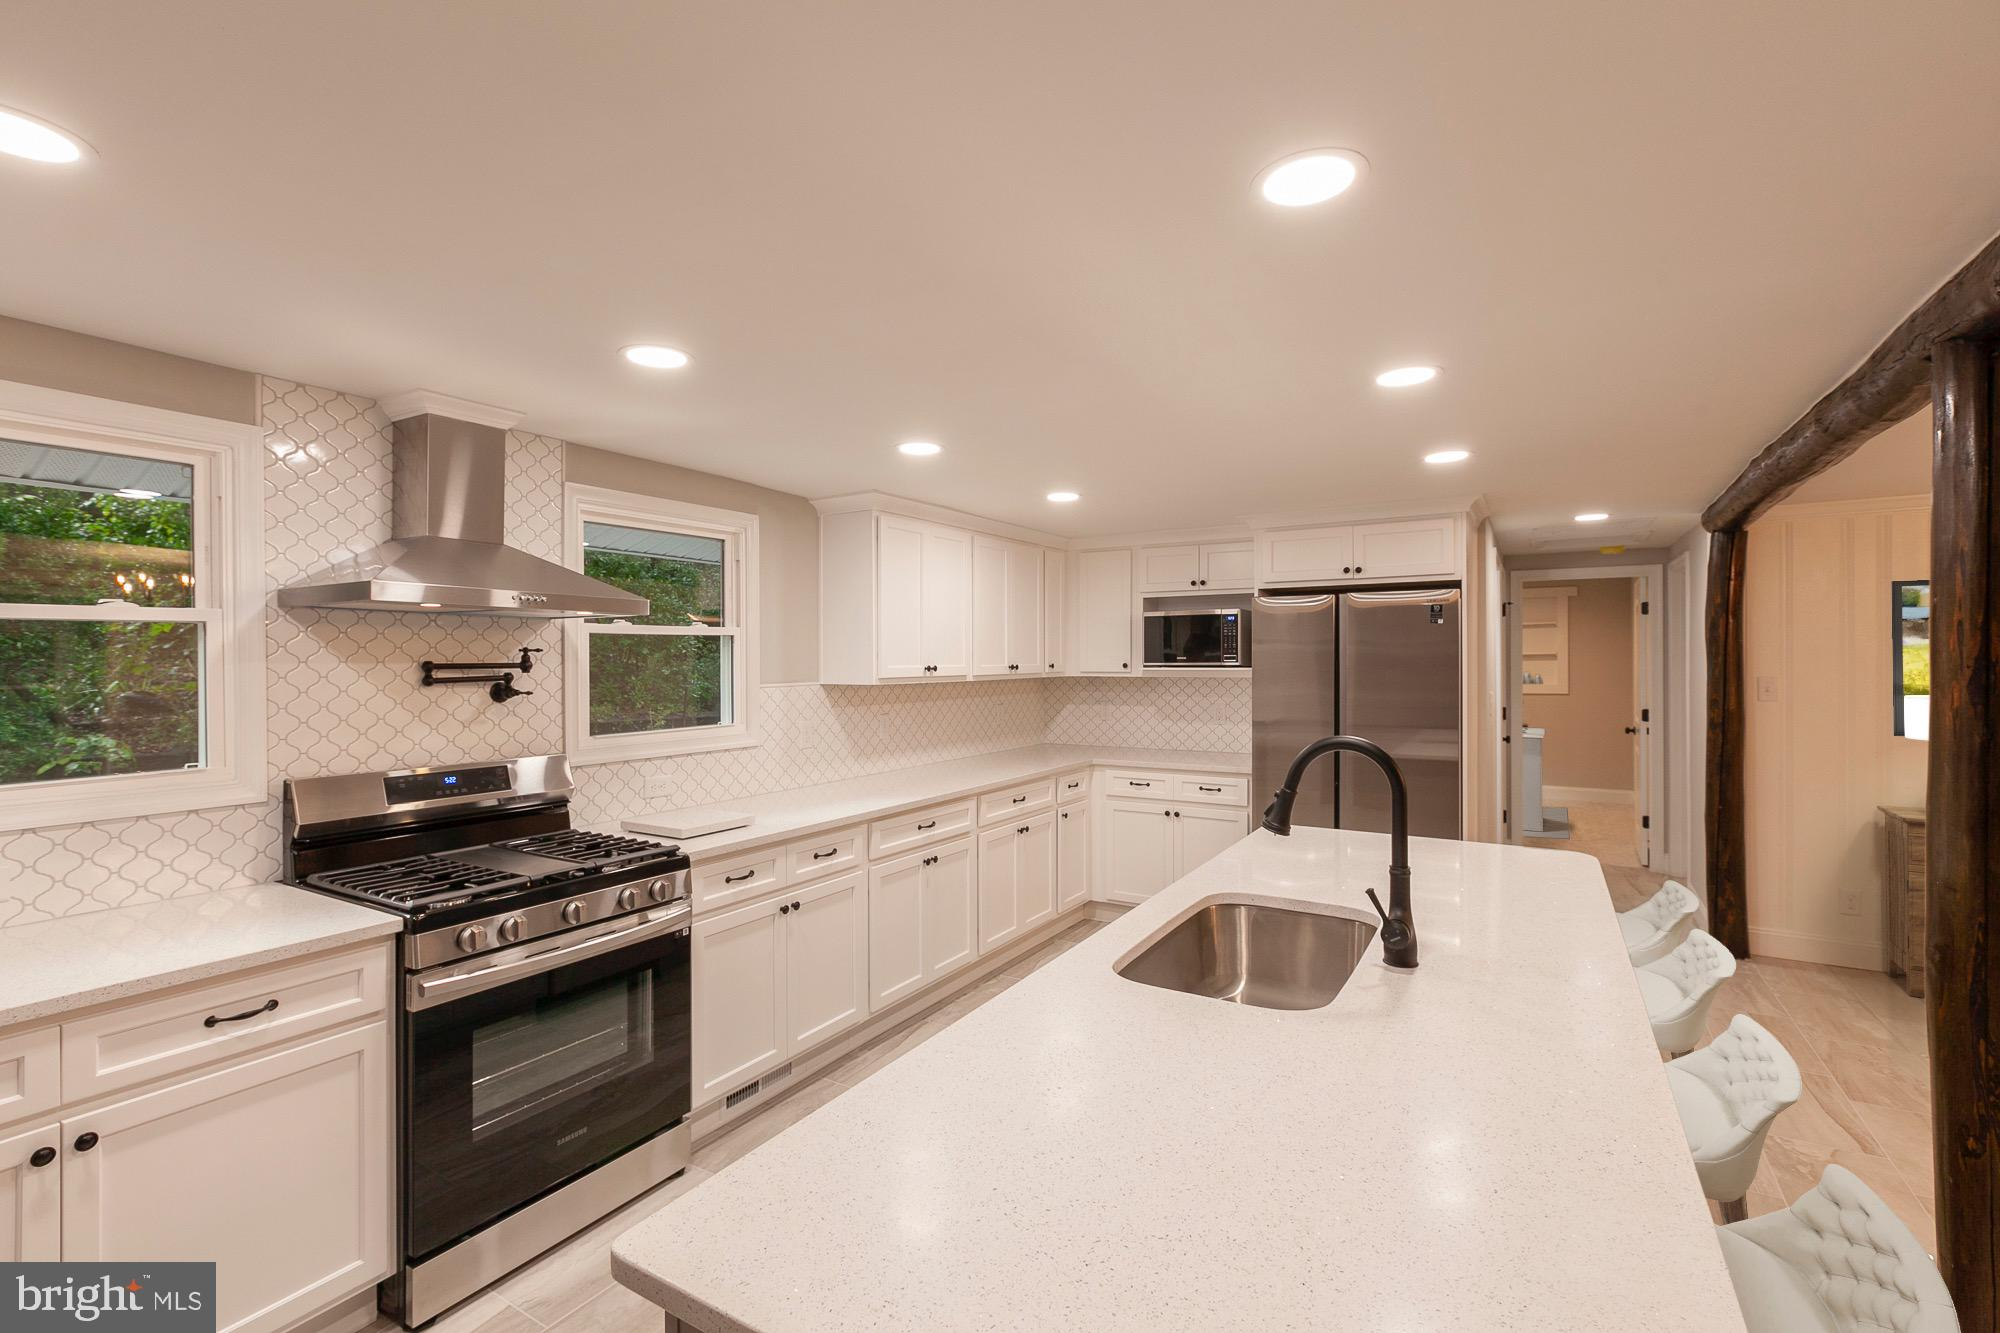 Completely renovated home that sits on just under 1 acre of land with no HOA.  Kitchen has brand new